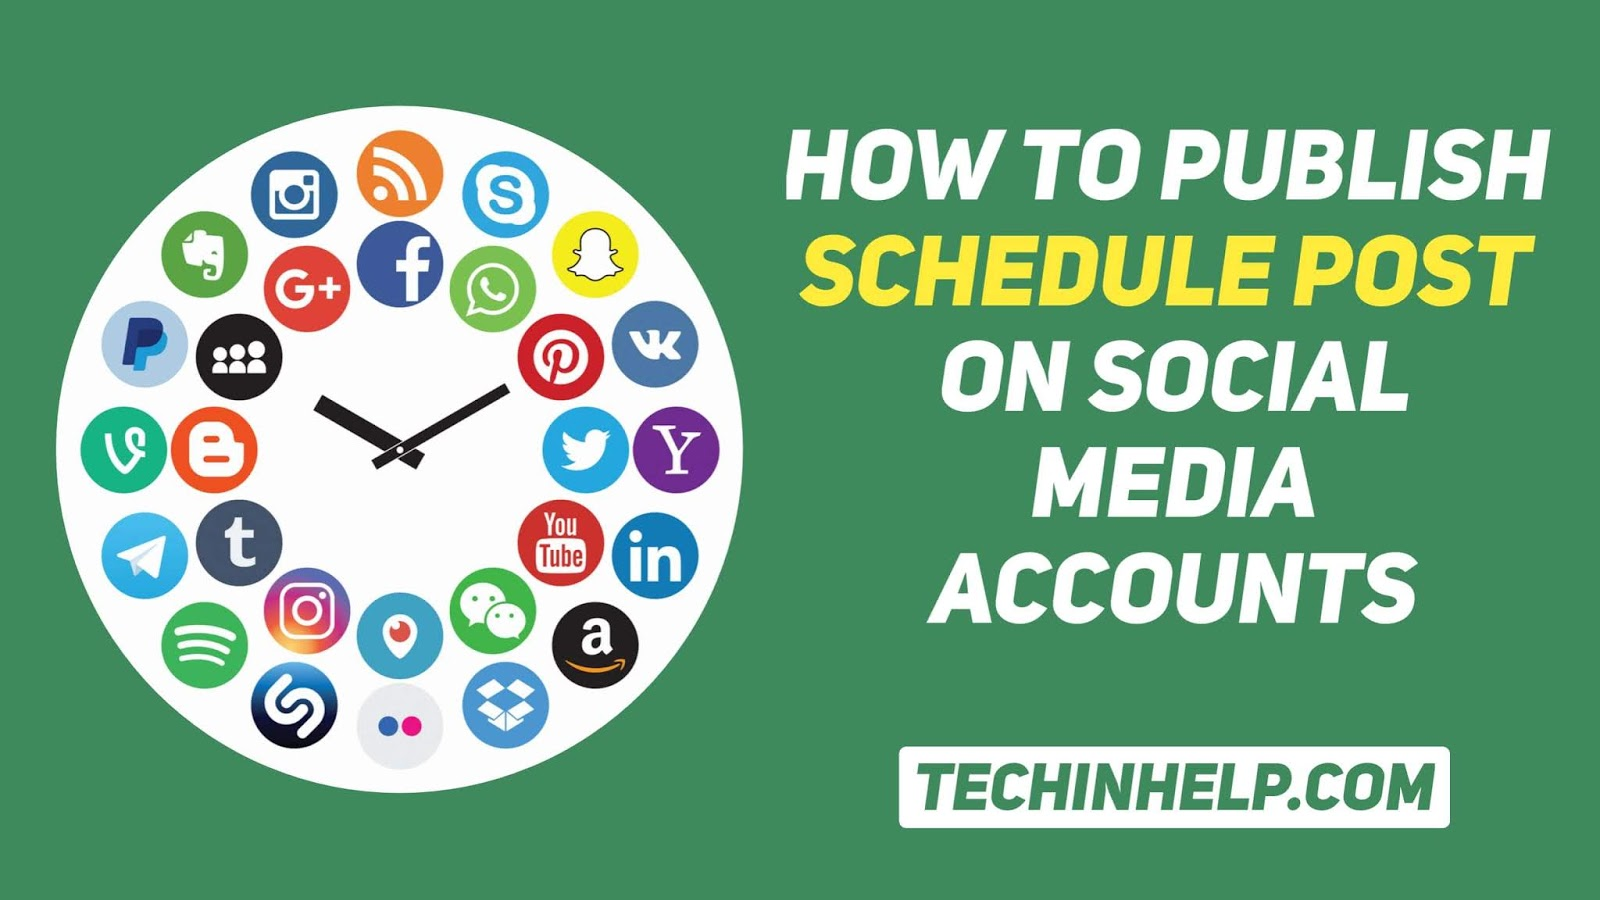 Publish-schedule-post-on-social-media